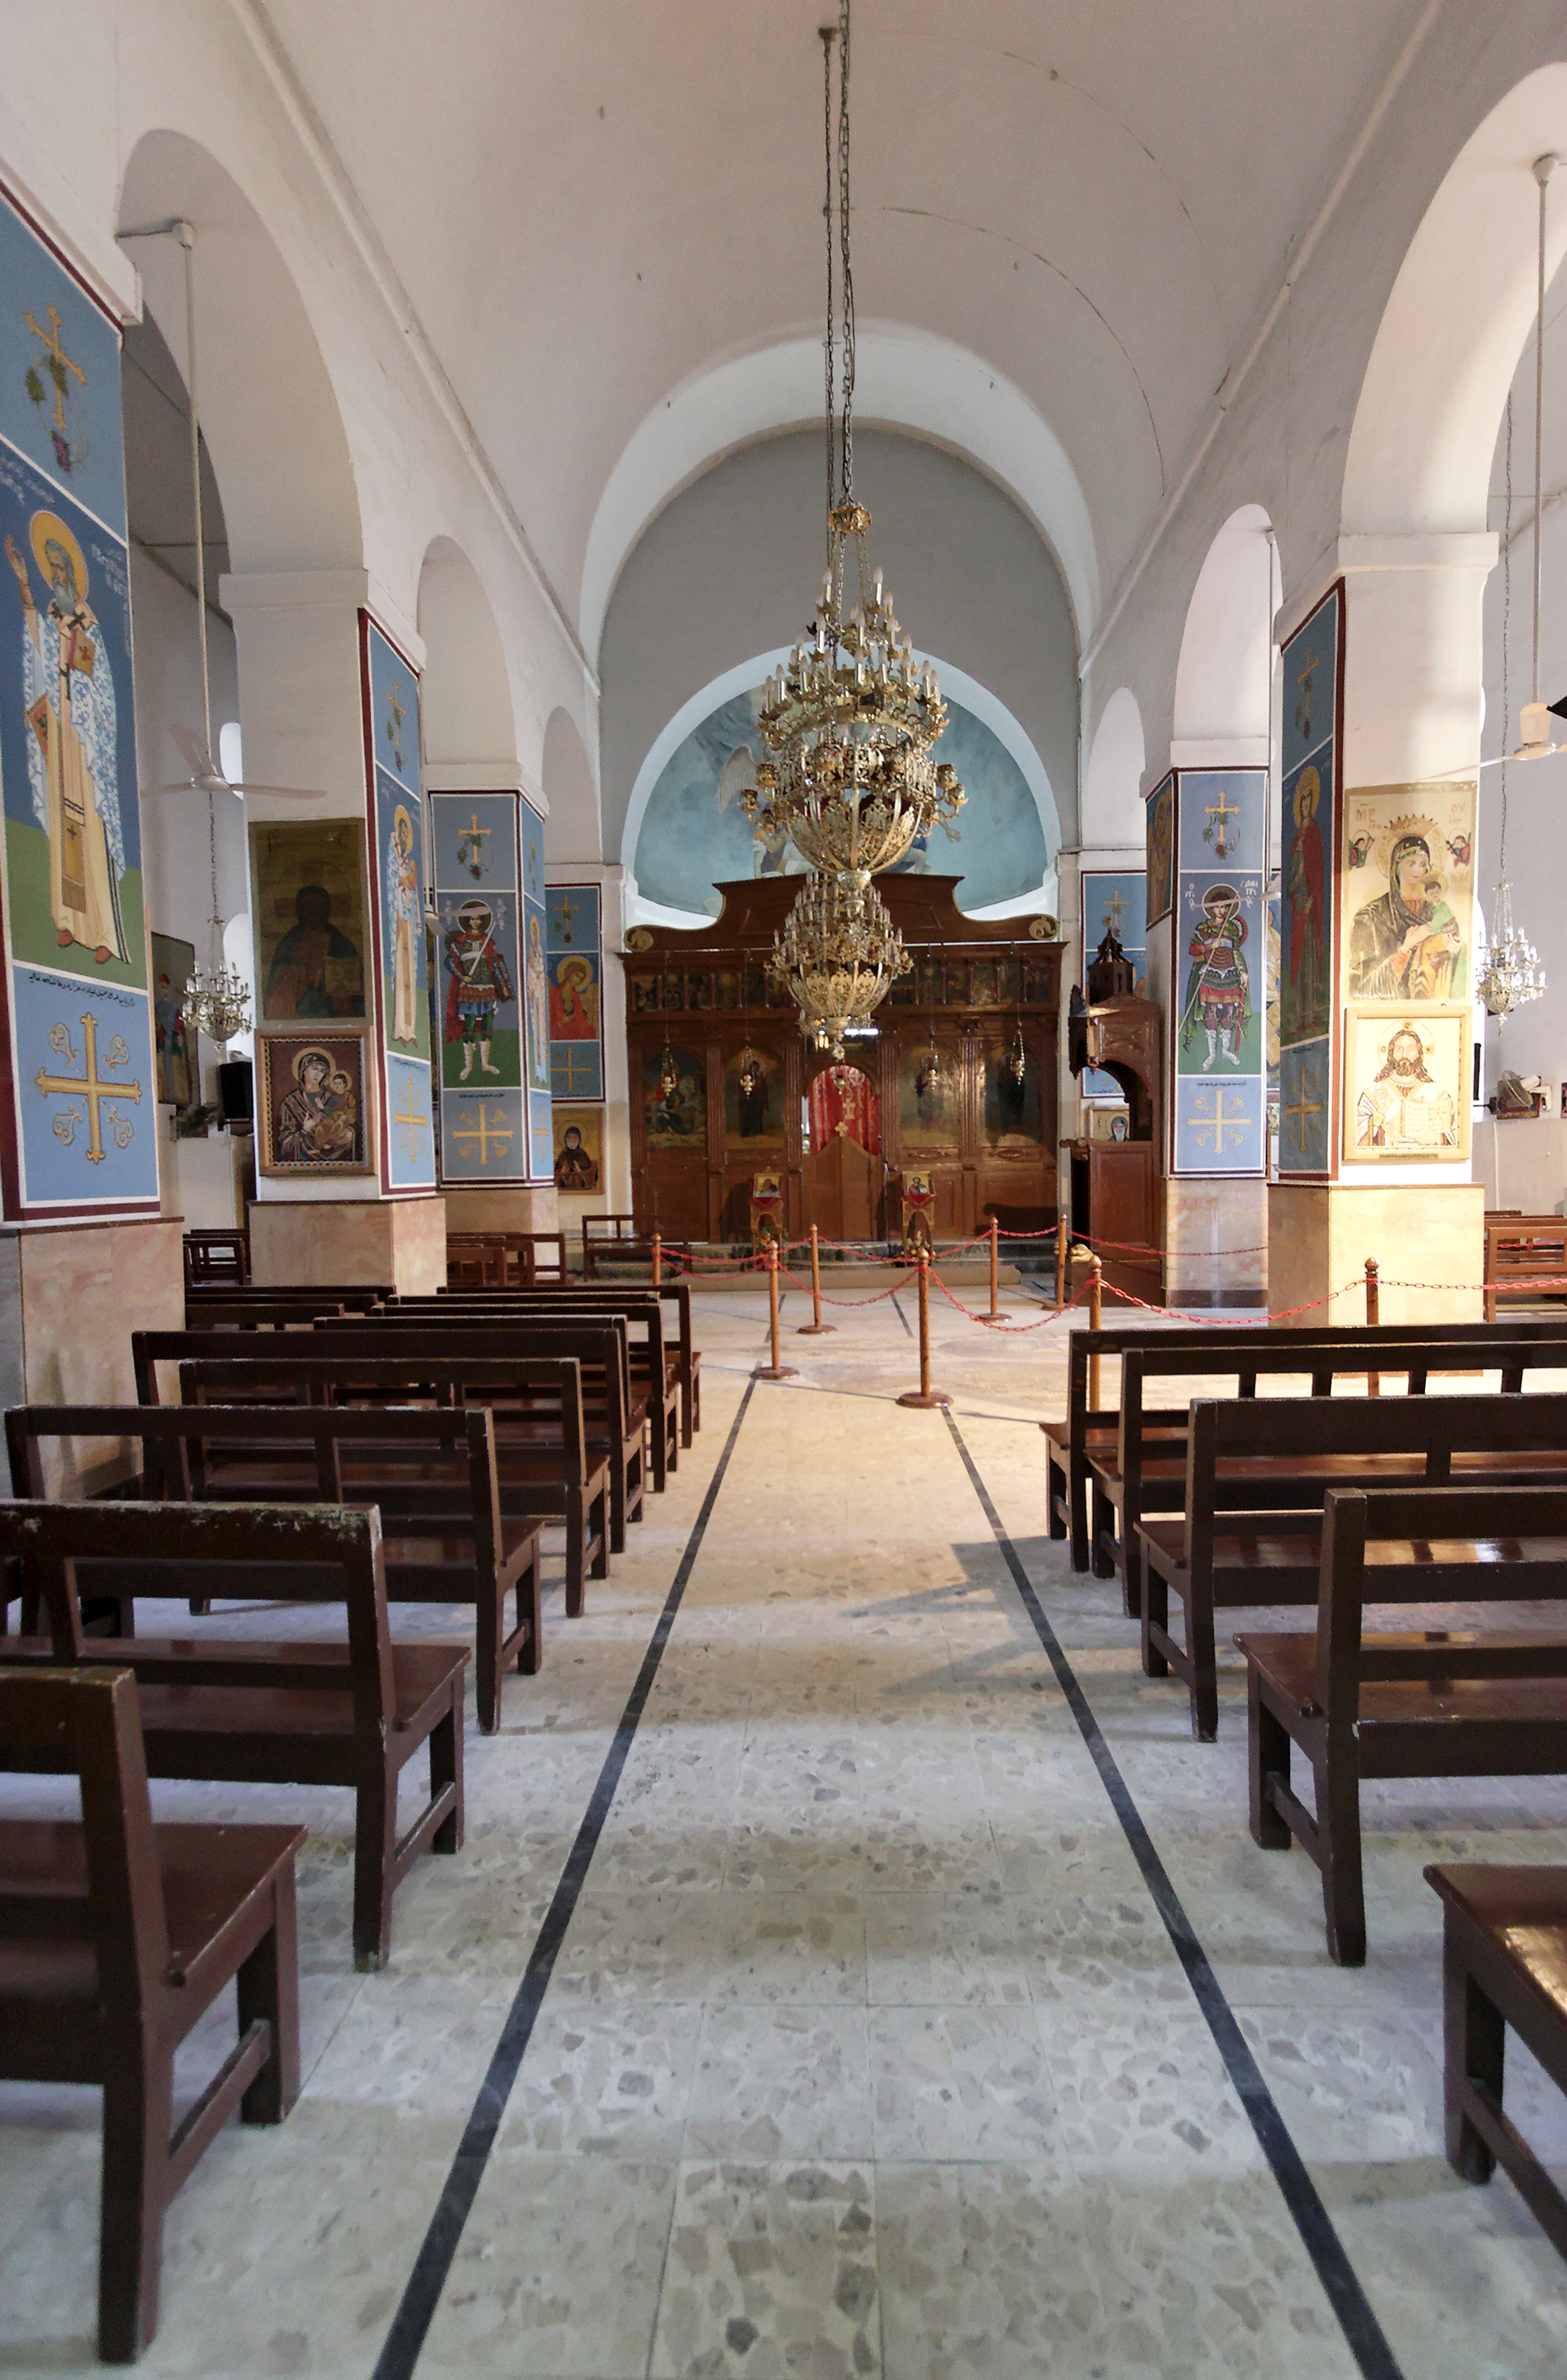 John the Baptist church, Madaba Jordan 3.jpg